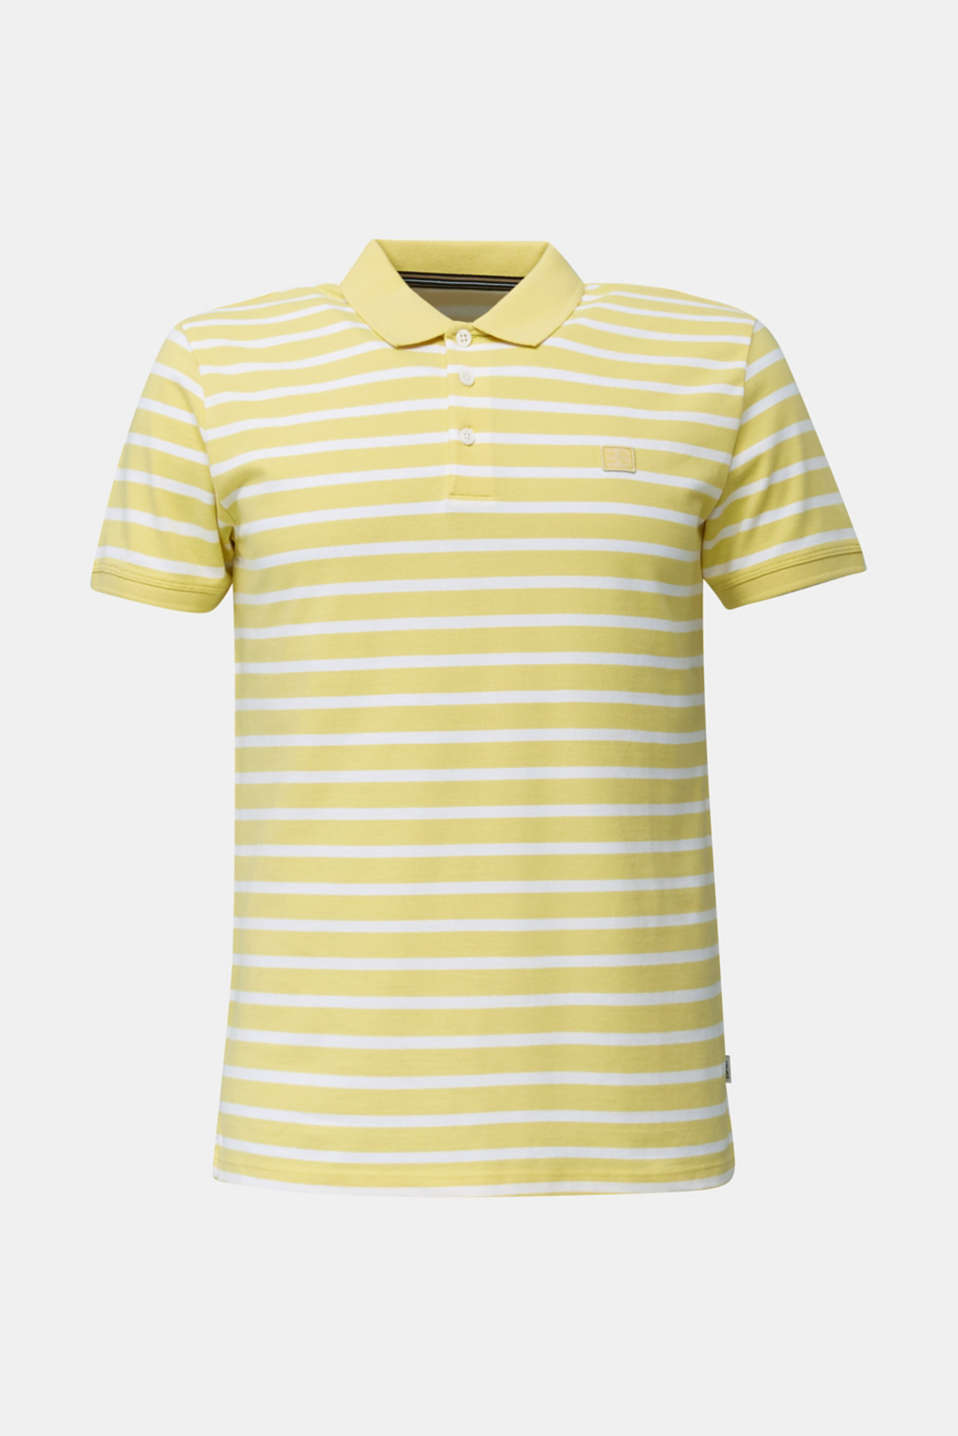 Piqué polo shirt in 100% cotton, LIGHT YELLOW 3, detail image number 7